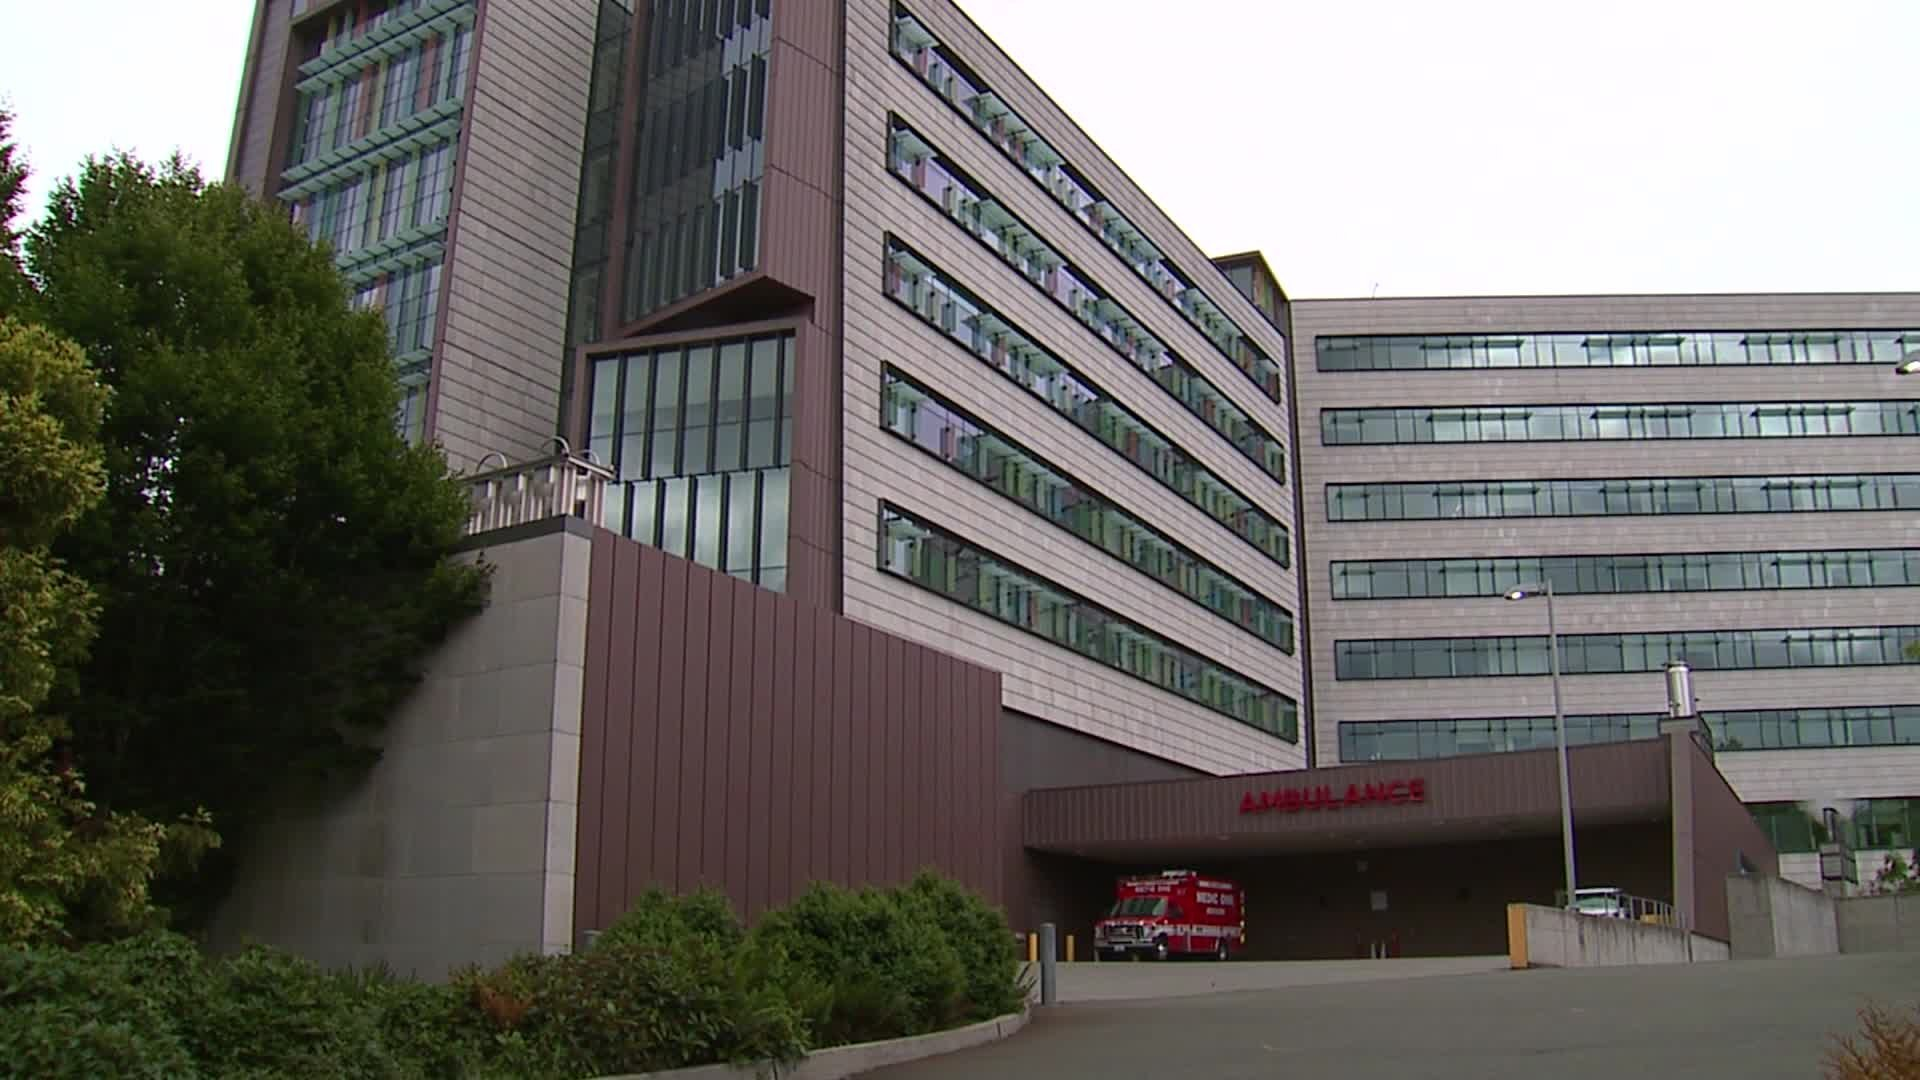 Seattle Children's Hospital has again shut down operating rooms due to mold problems